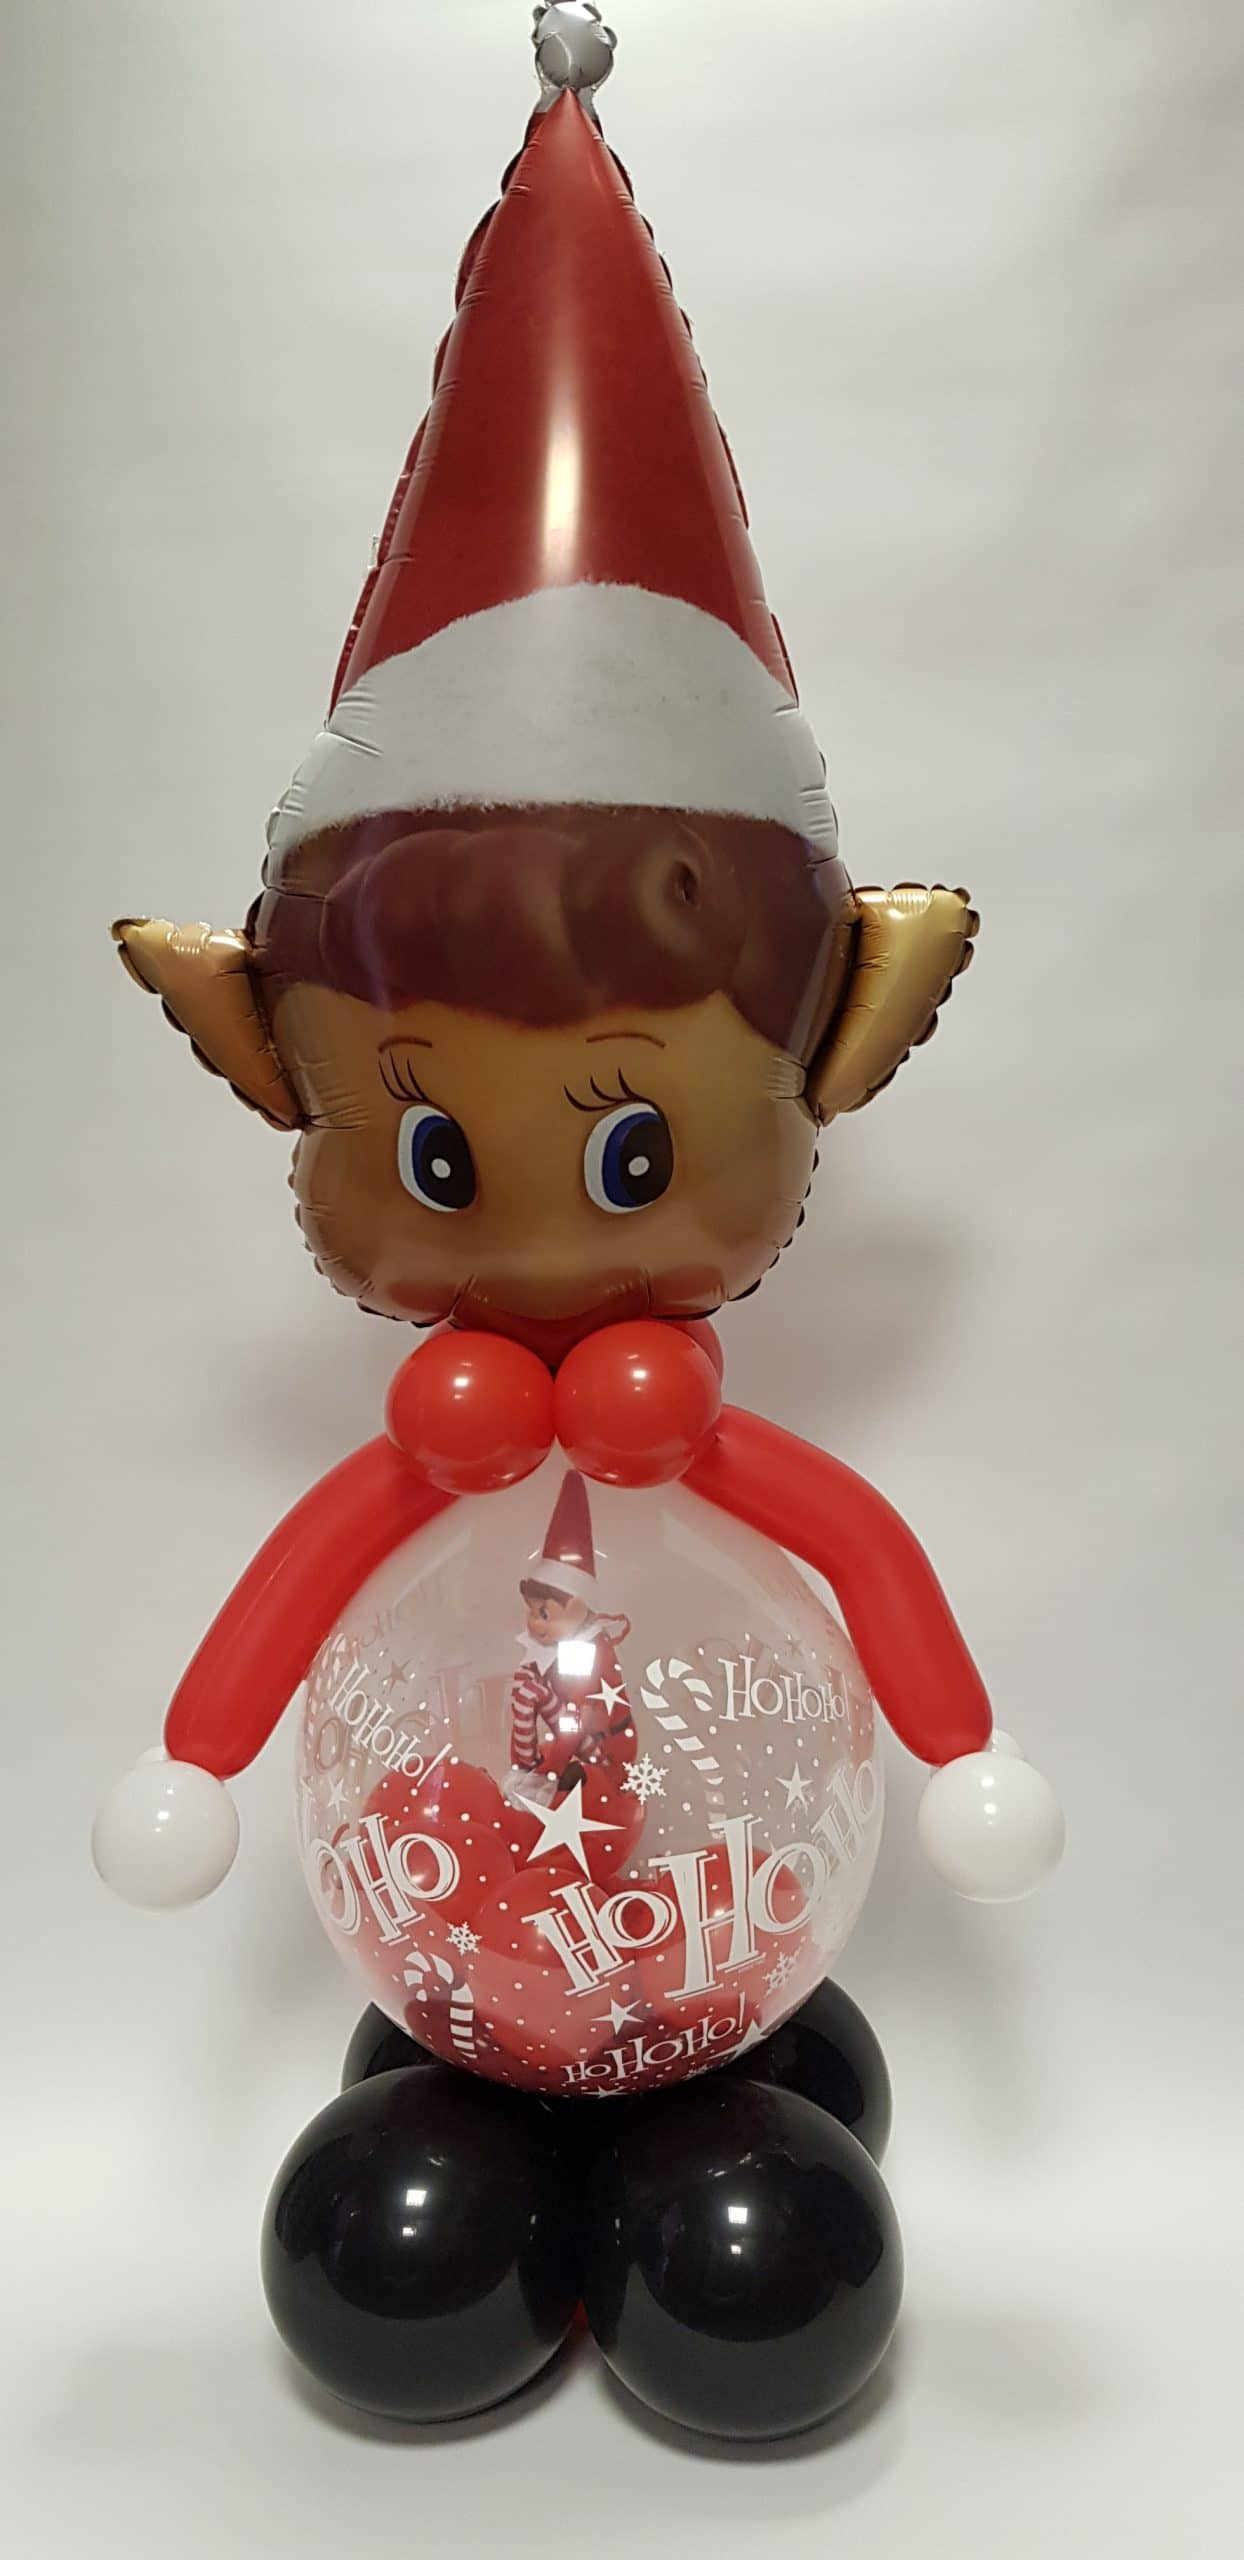 Welcome Elf balloon available from Cardiff Balloons